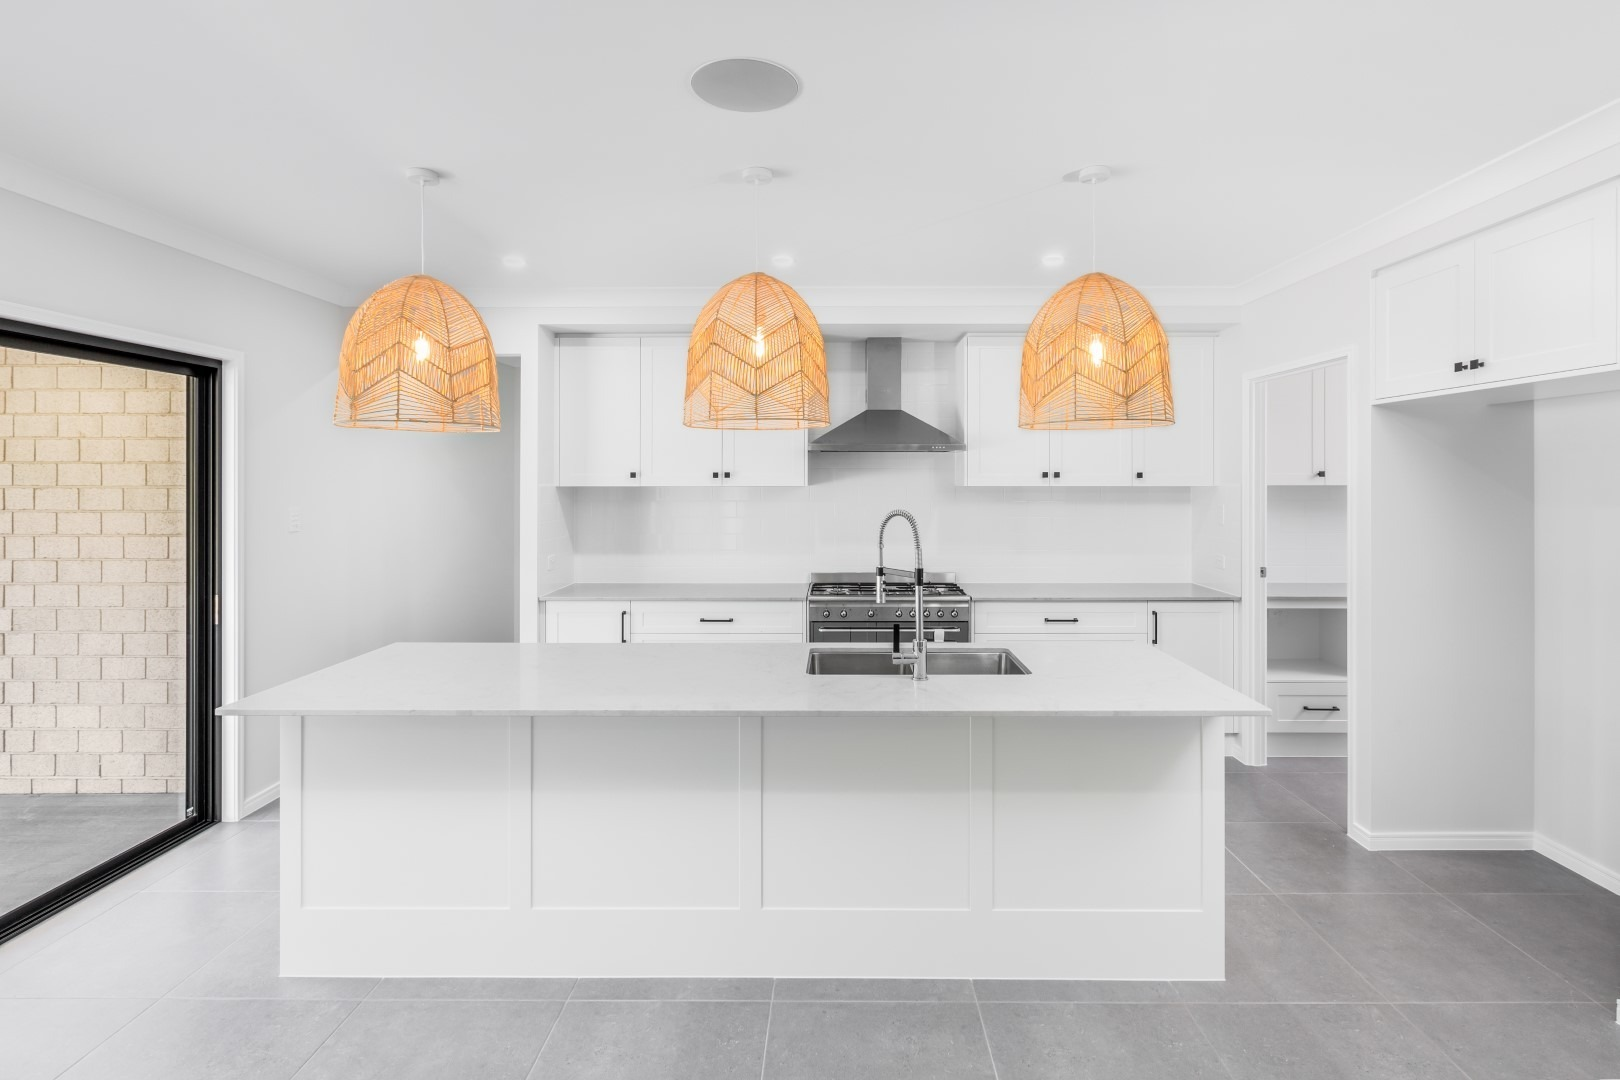 Incorporating a kitchen island